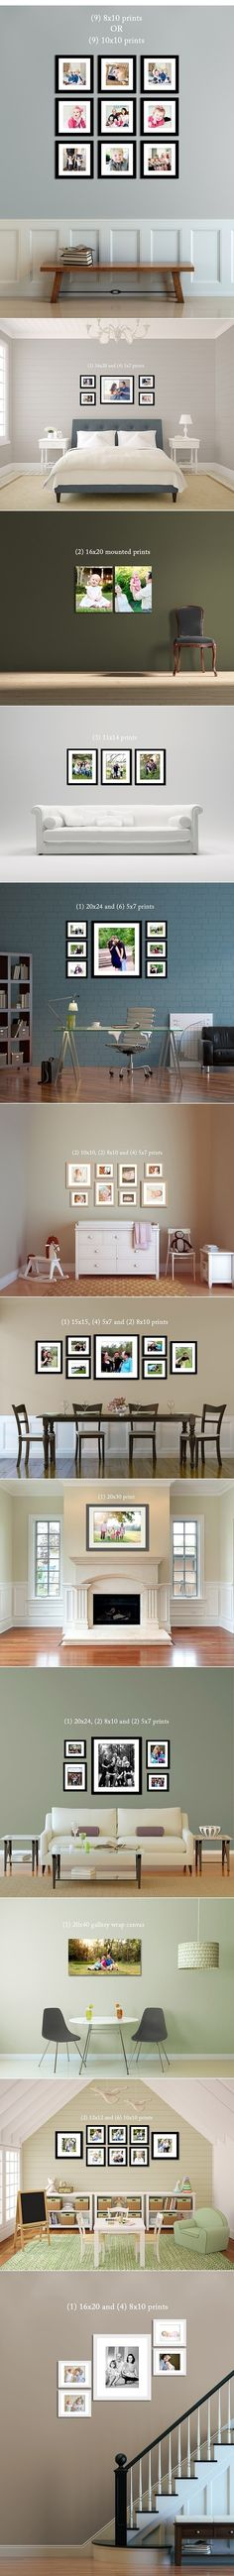 Ideas for hanging photos